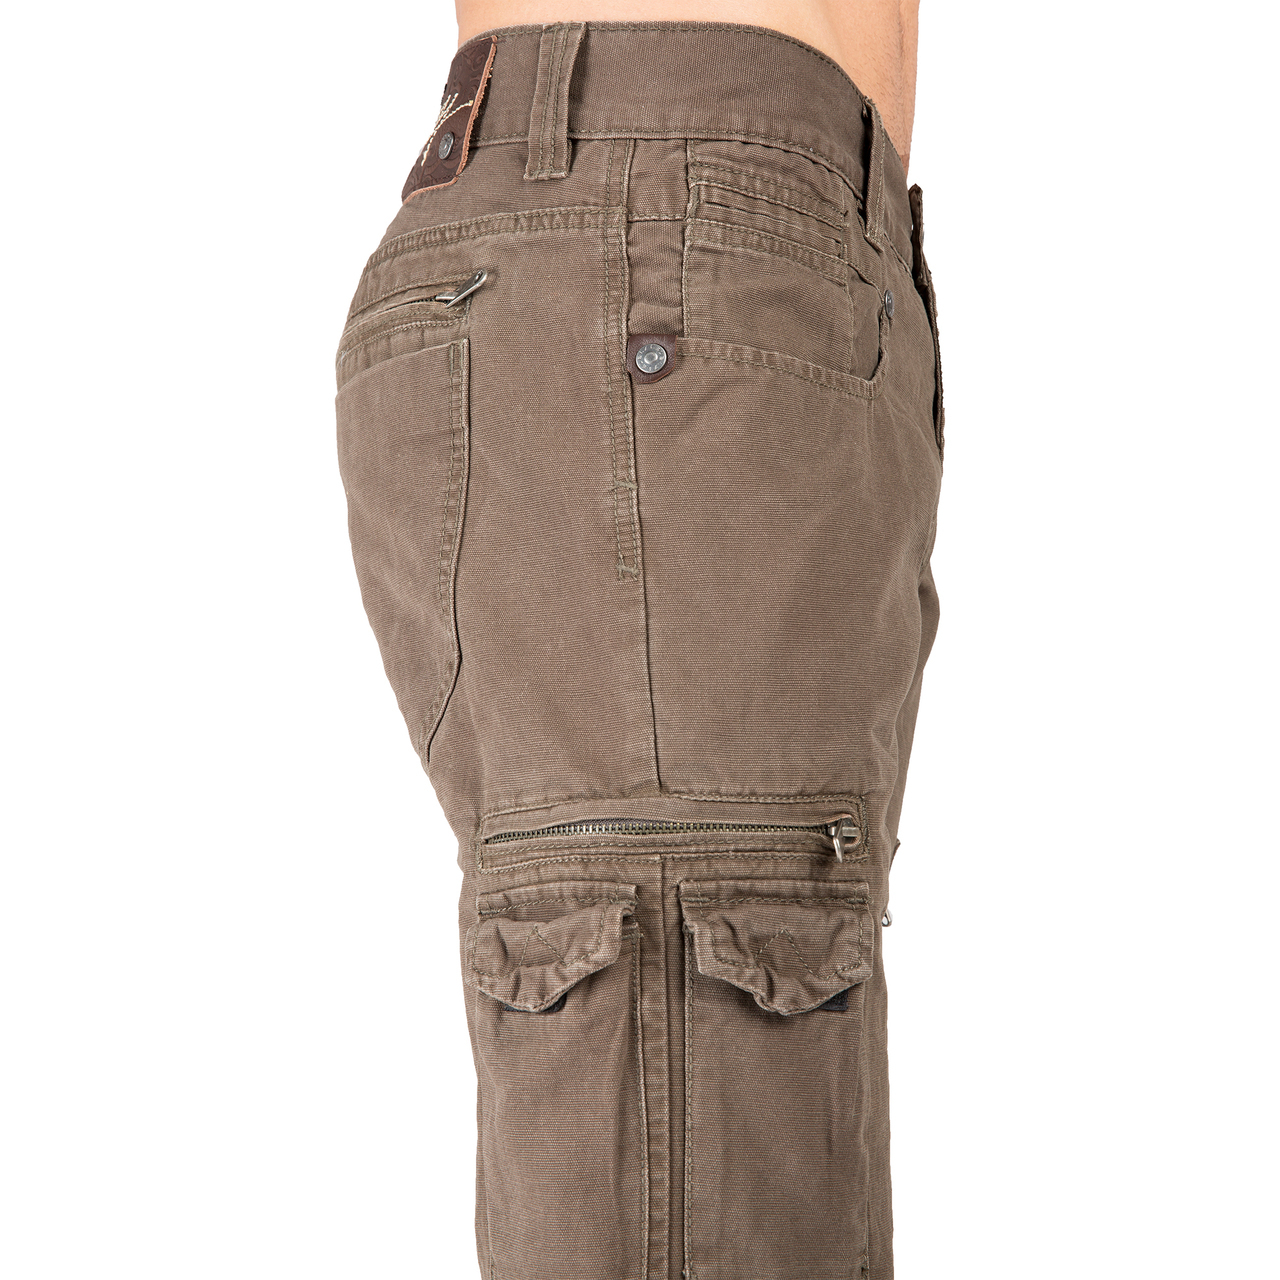 Level 7 Mens Relaxed Straight Gray Canvas Premium Jeans Cargo Zipper Pockets